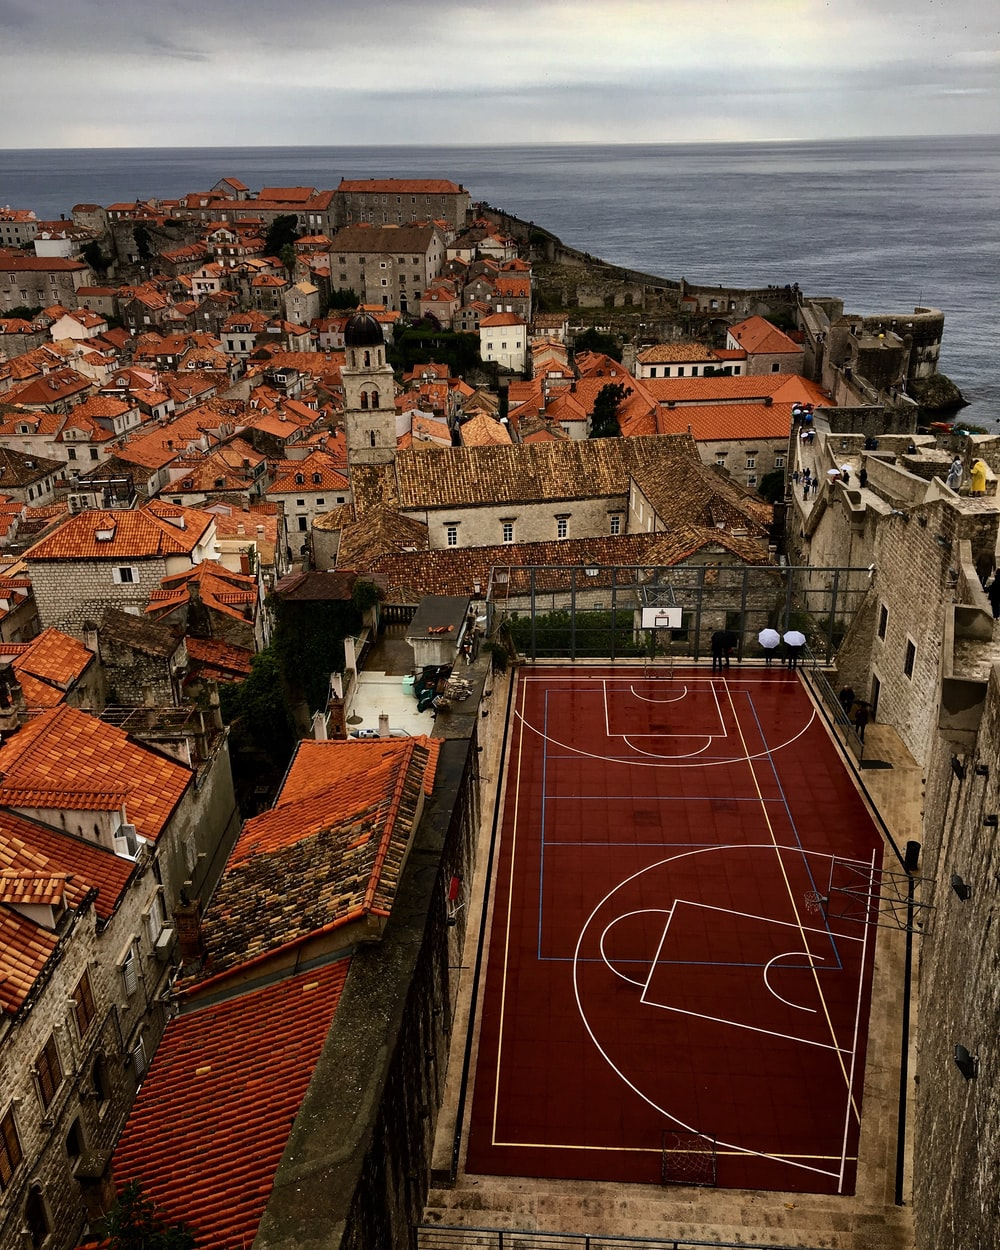 aerial photography of basketball court near town